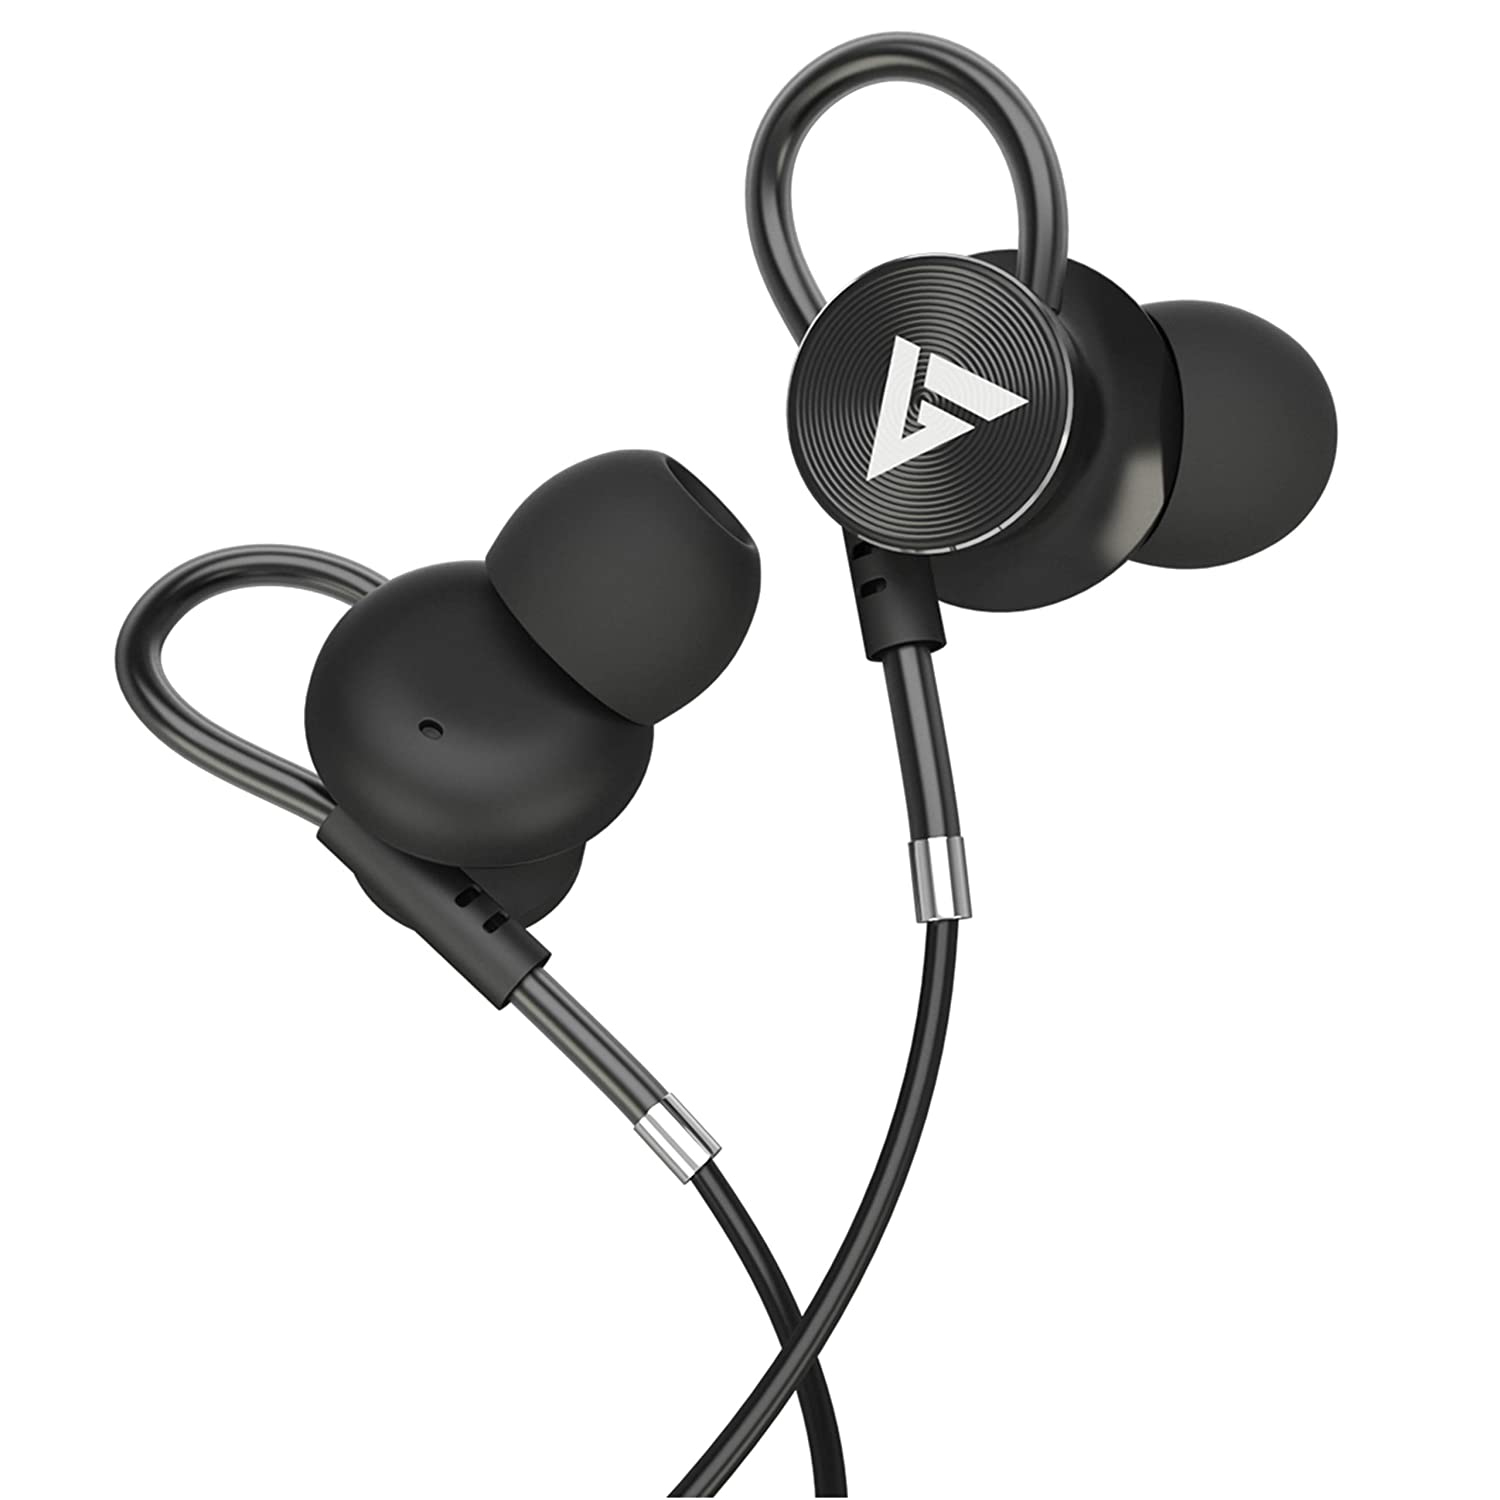 This is the best quality earphone under 500